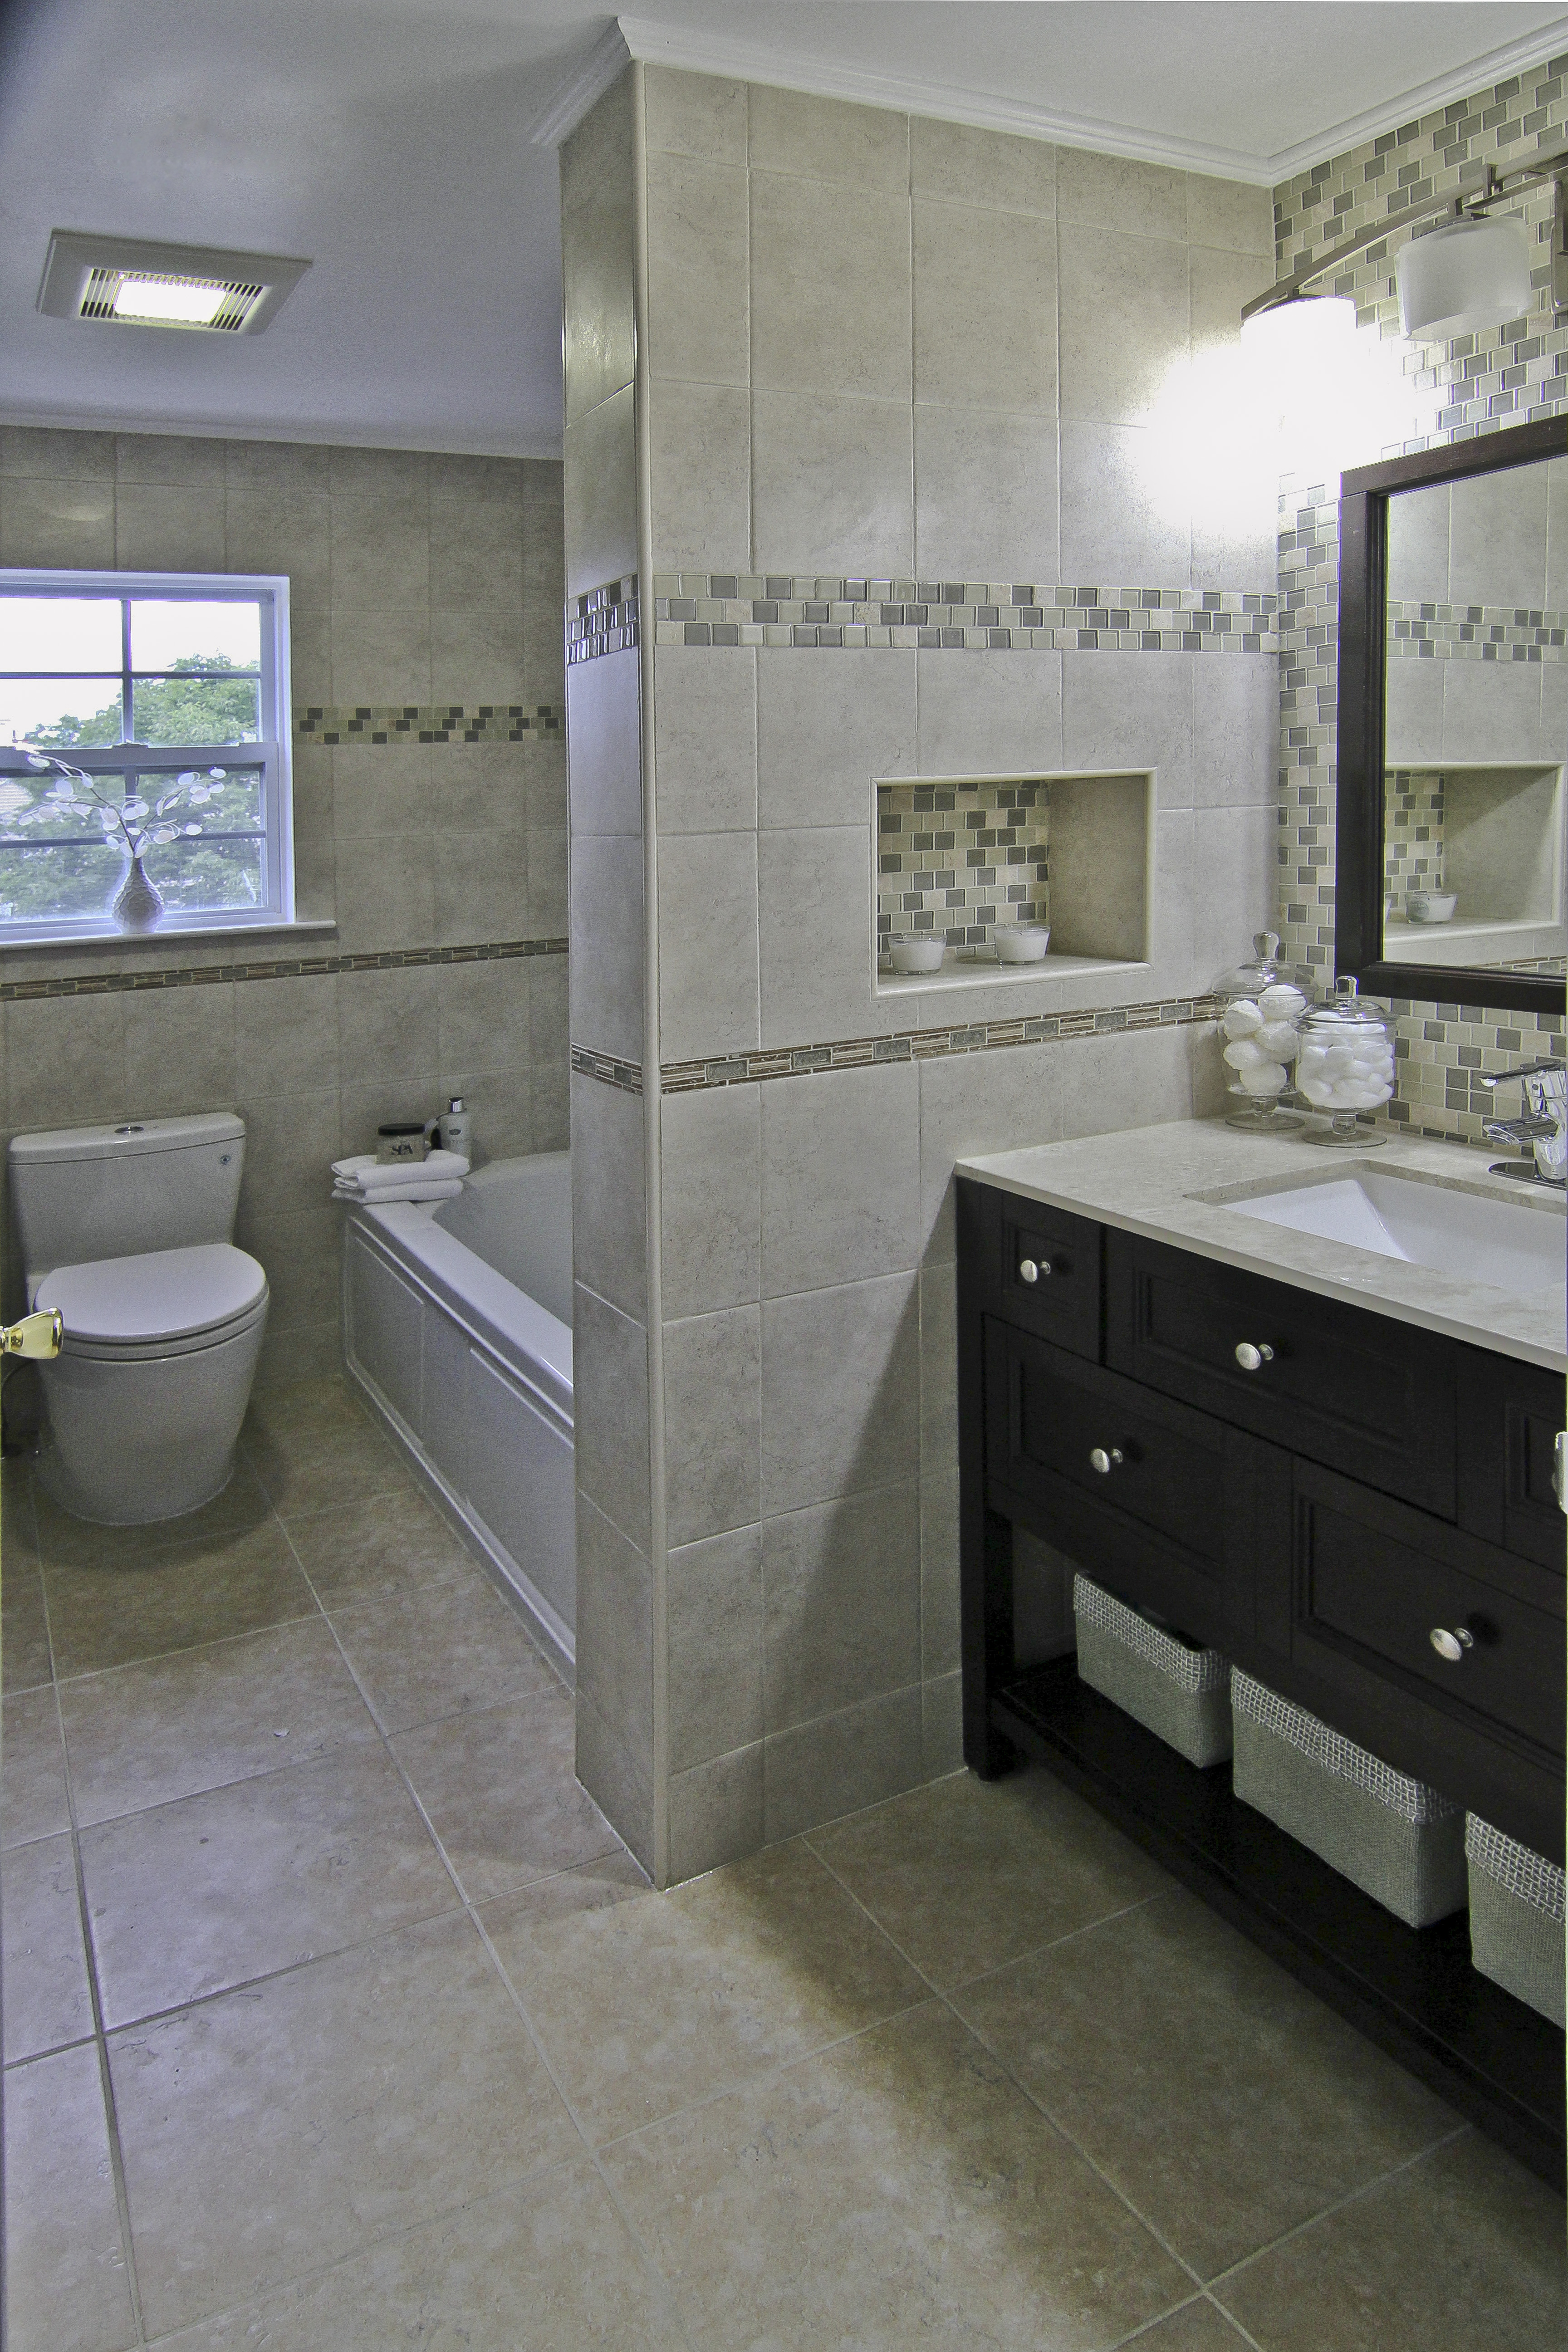 Hallway bathroom - ceramic tiles